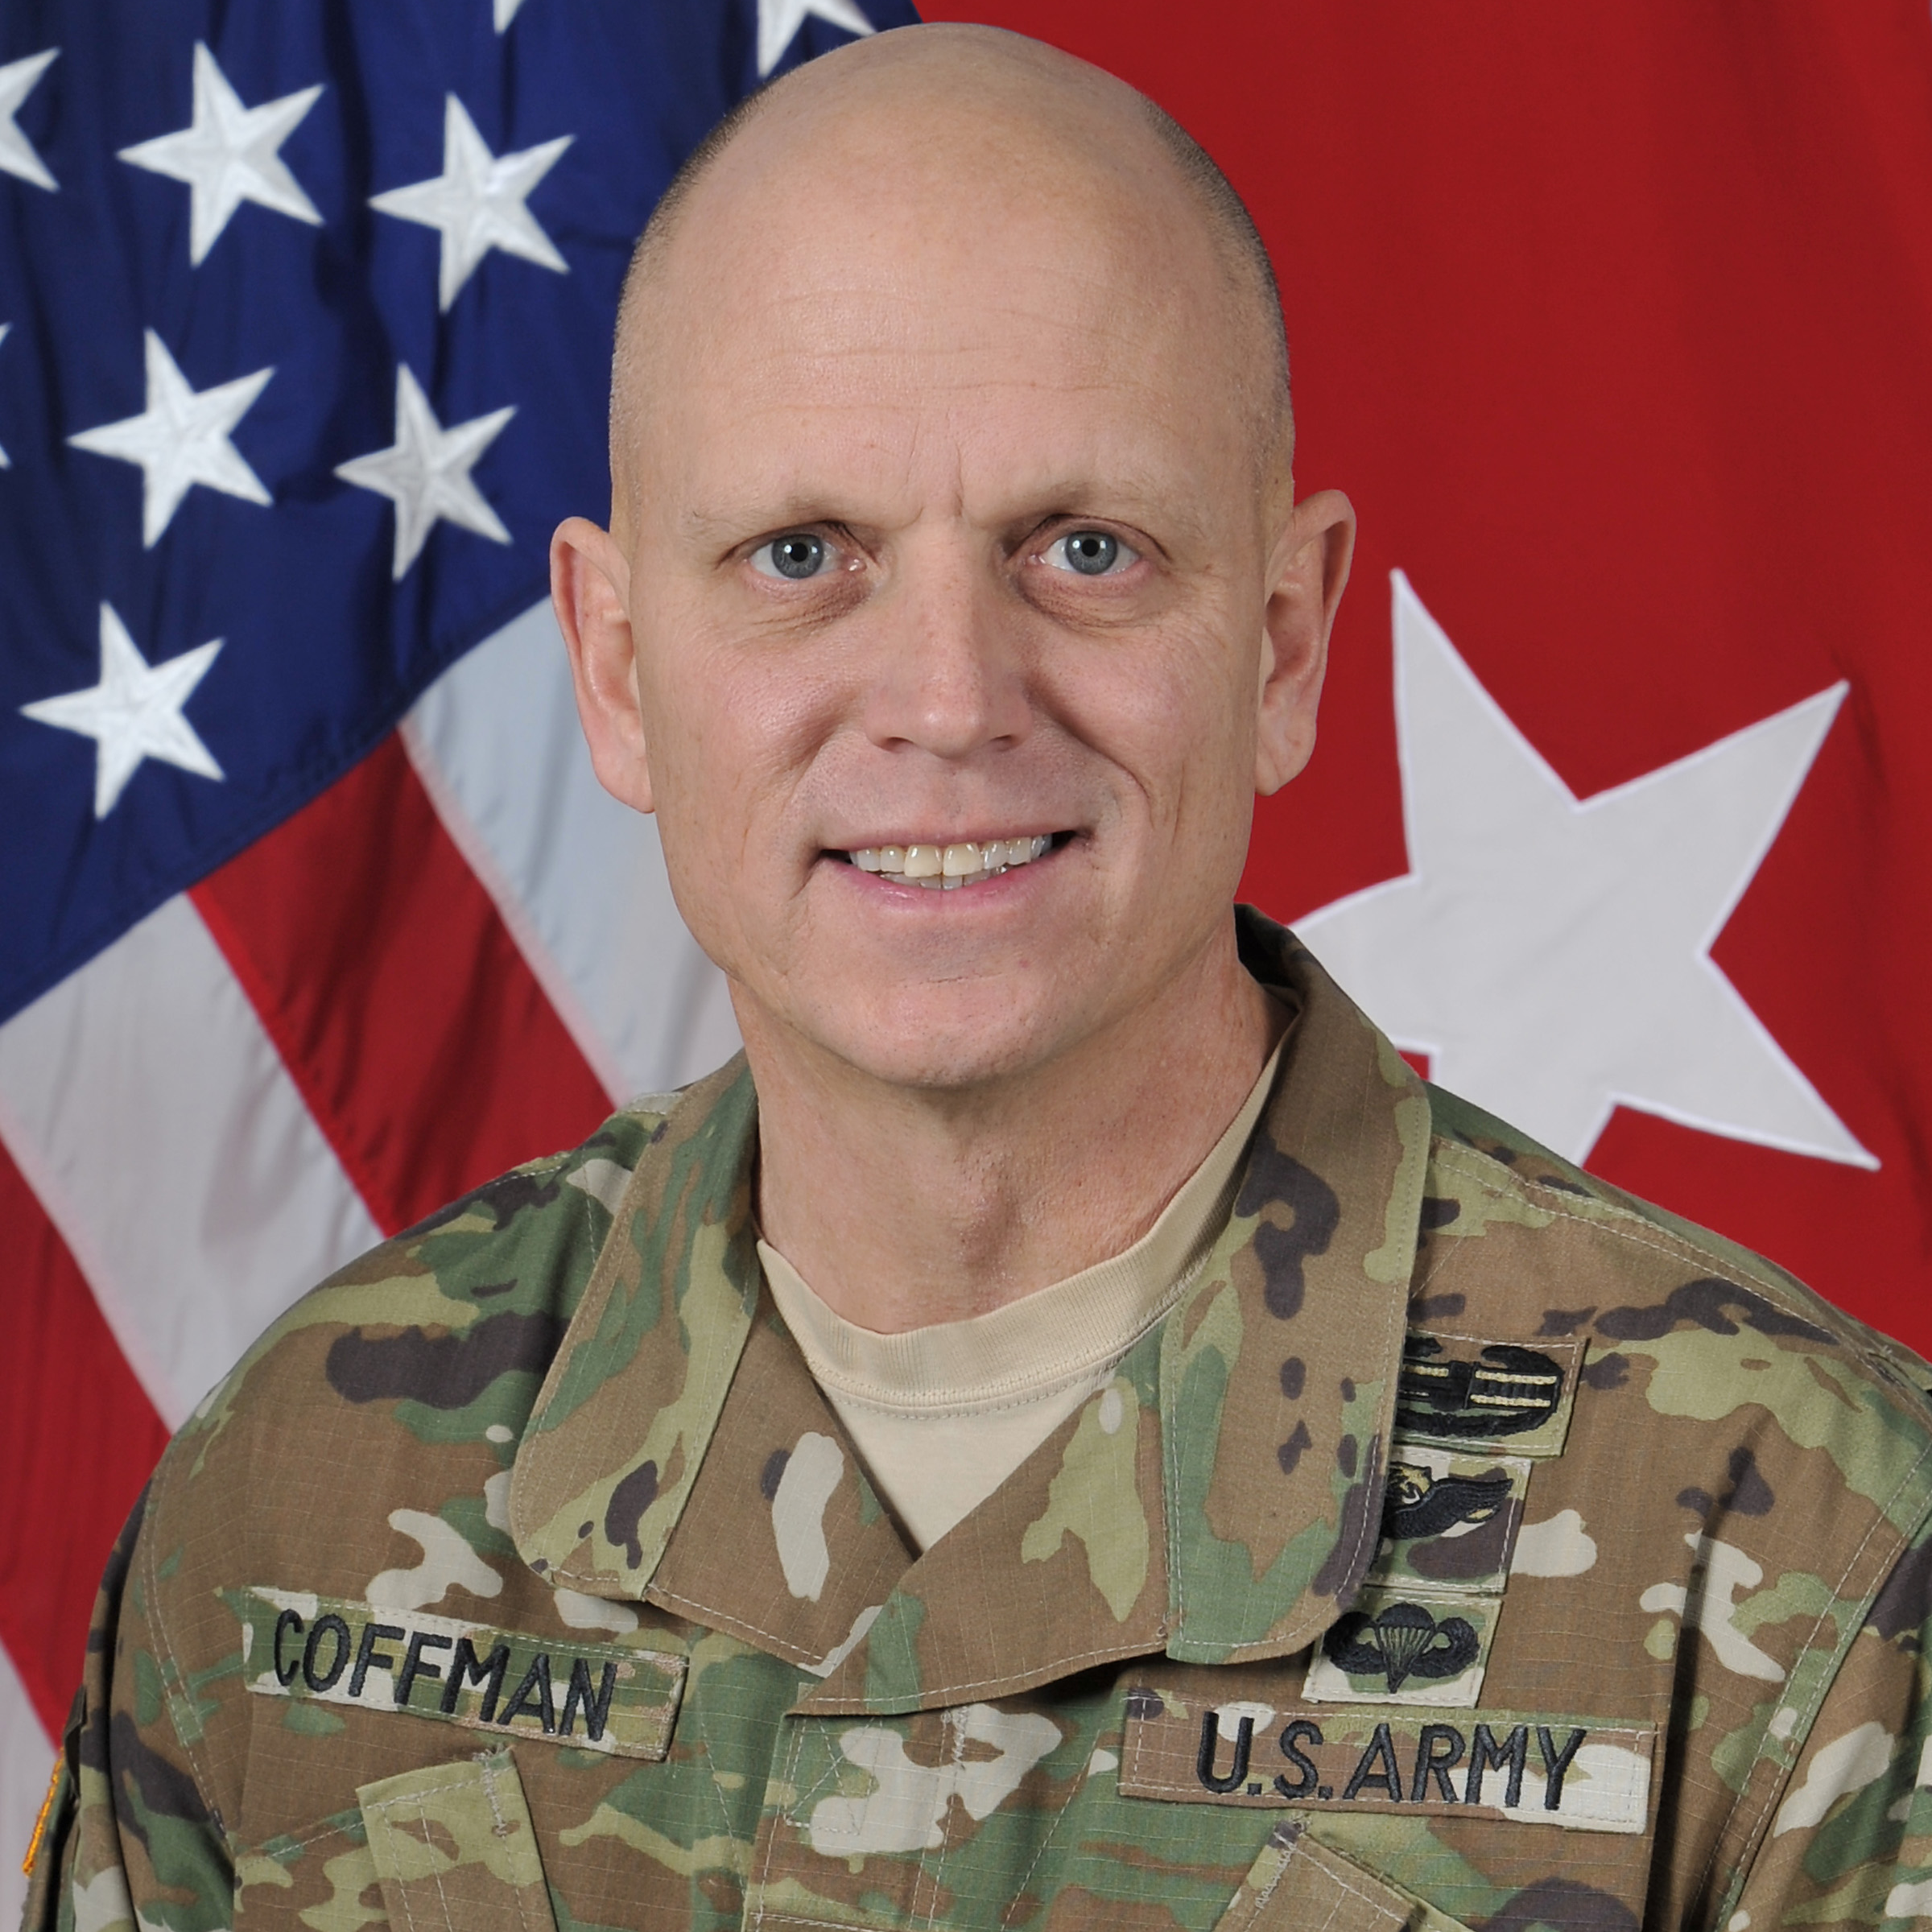 Brigadier General Richard Coffman